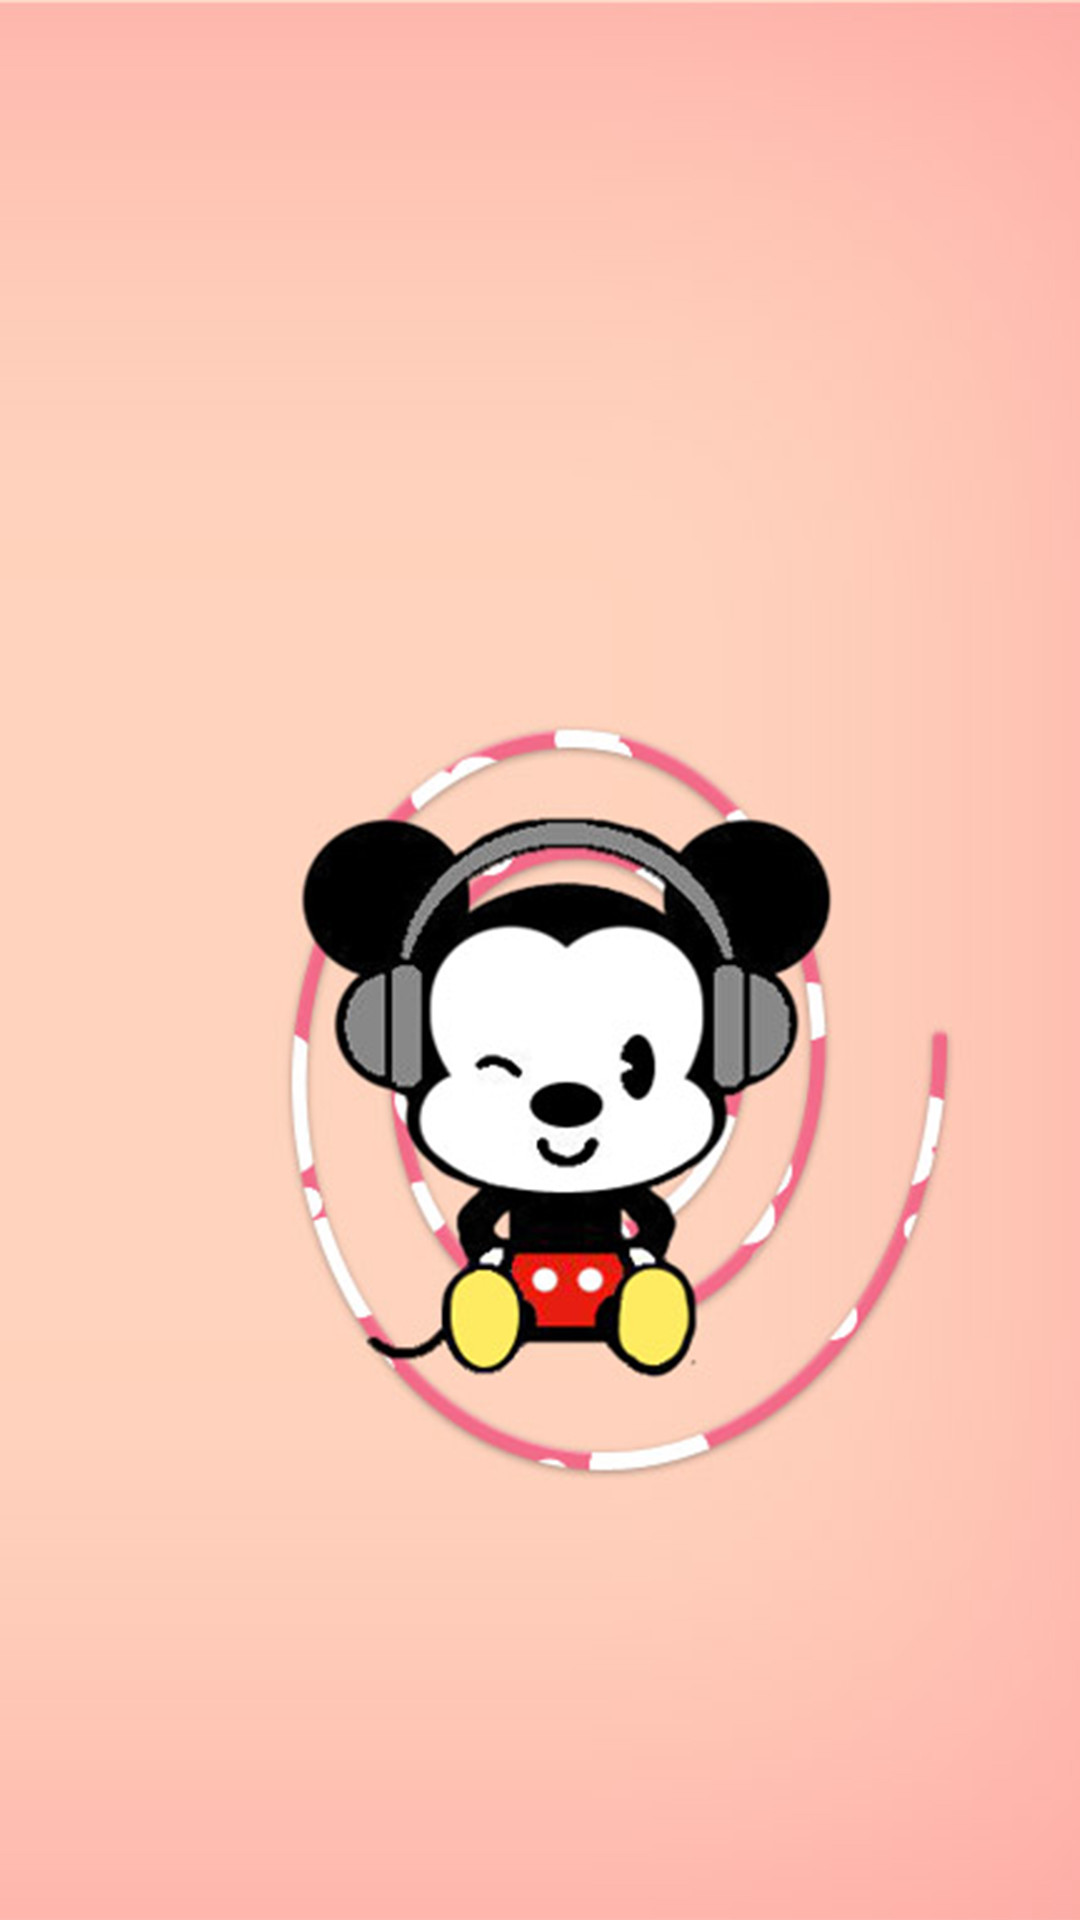 1080x1920 Mickey Mouse Wallpapers For IPhone